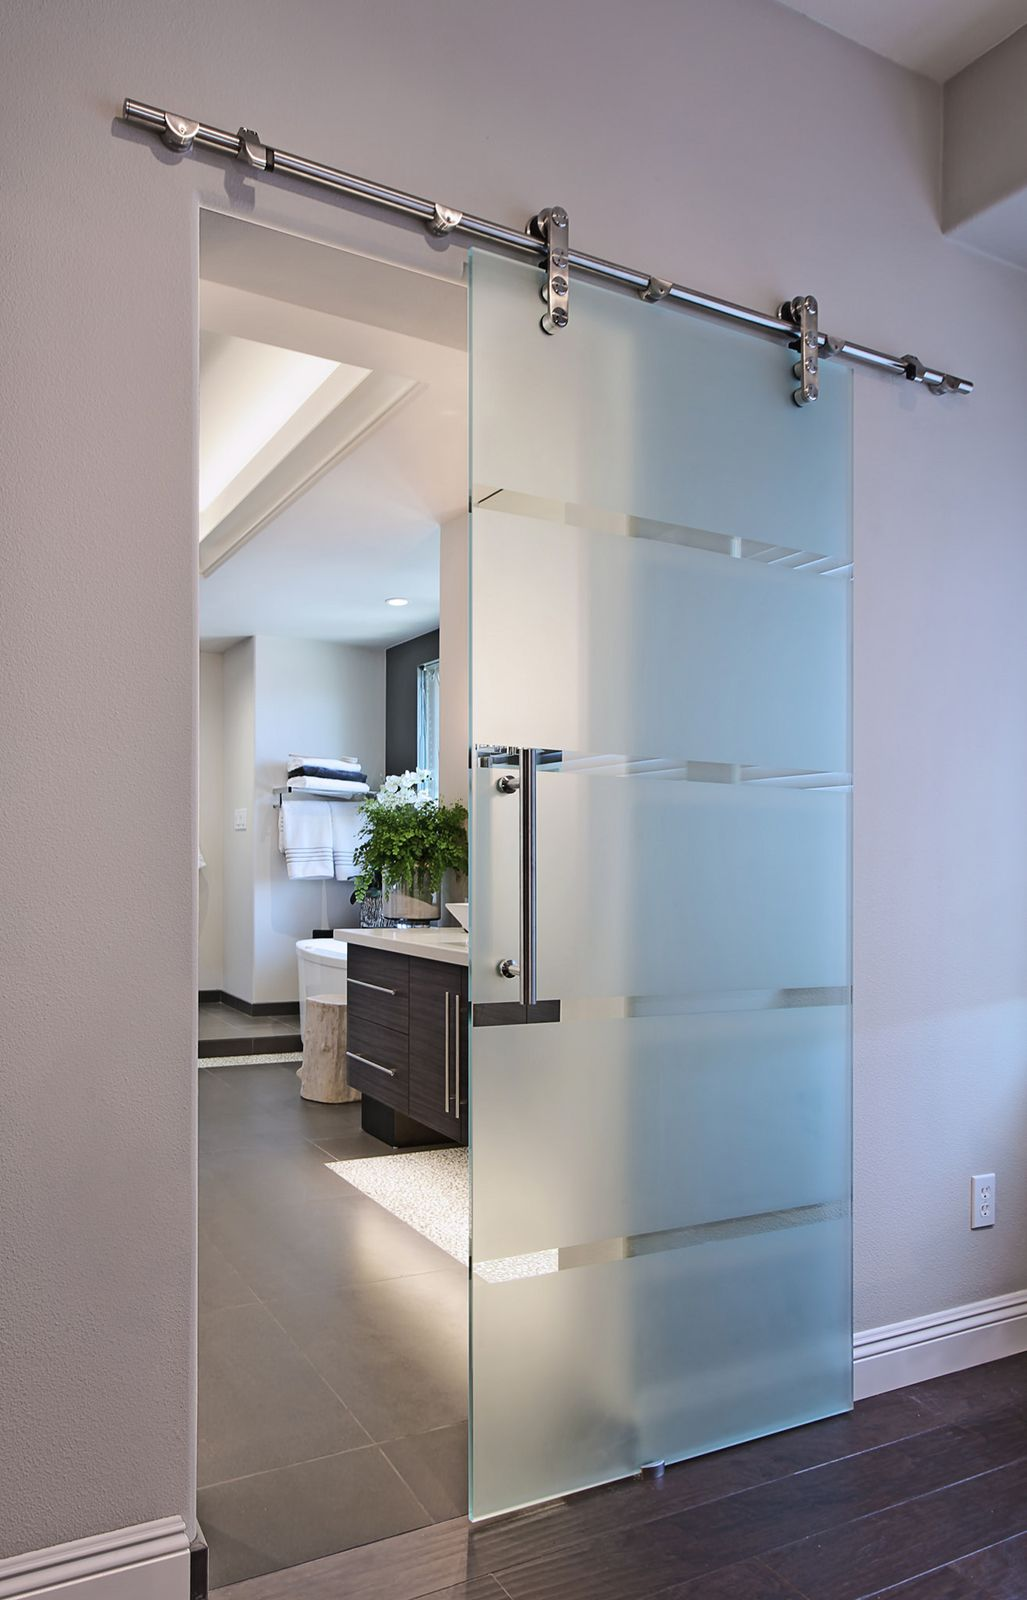 frosted glass barn doors. We Quite Like This Idea Of A Sliding Frosted Door To The Kitchen From Hallway - Close Or Leave Open As Wish :-) Glass Barn Doors